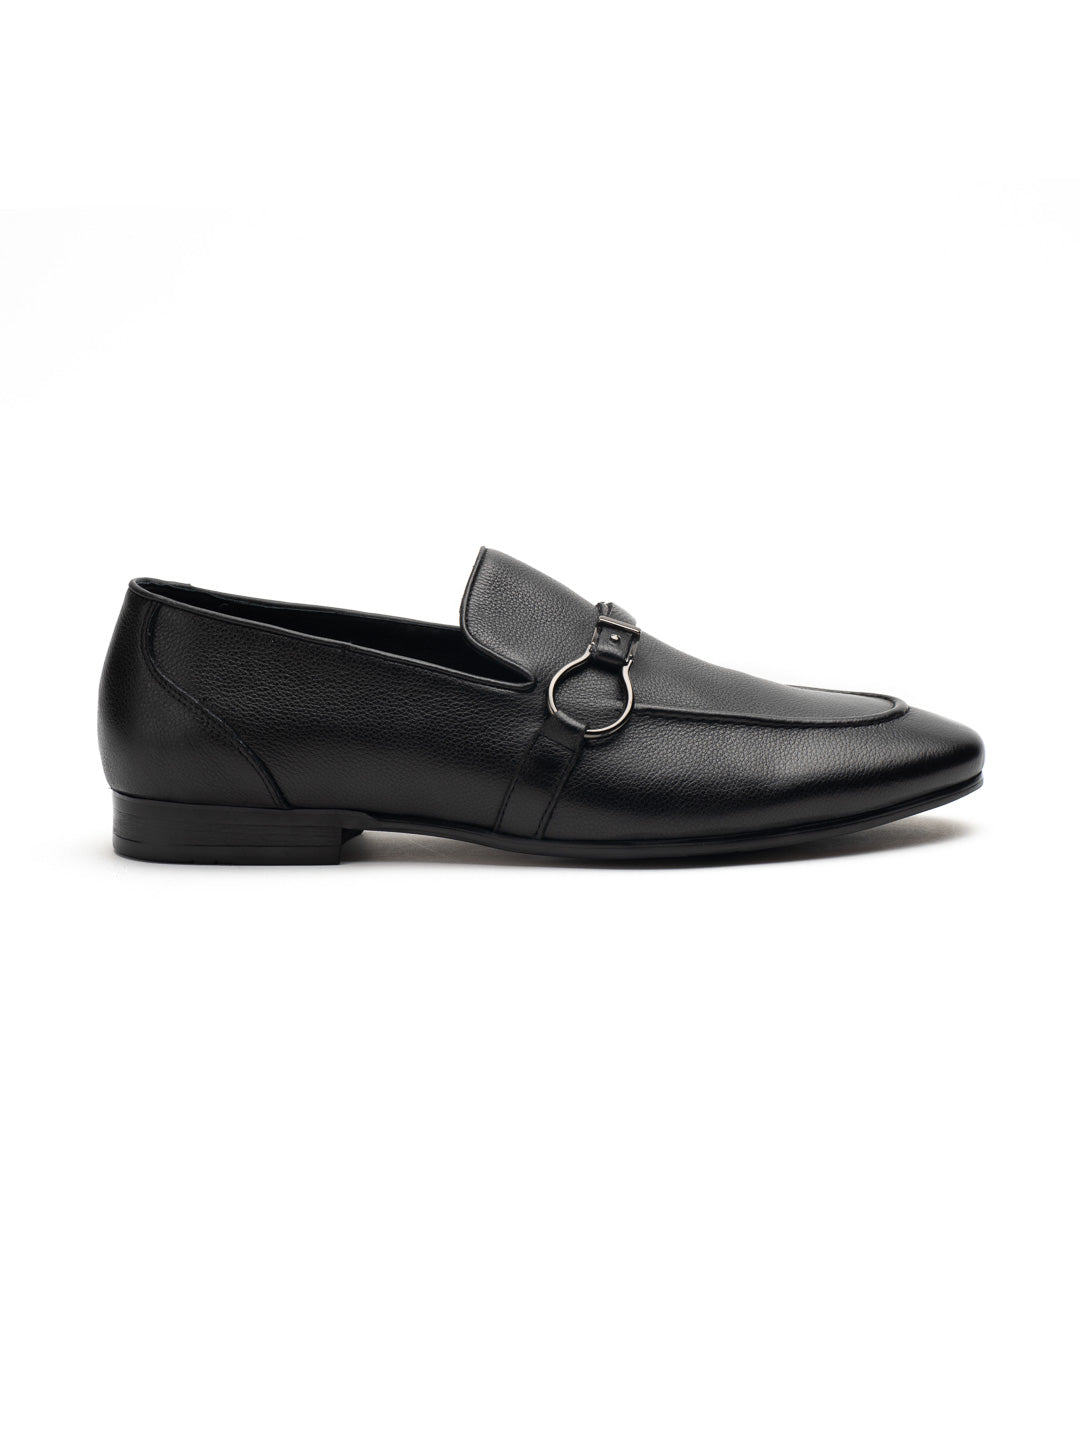 Carousal Black Loafers